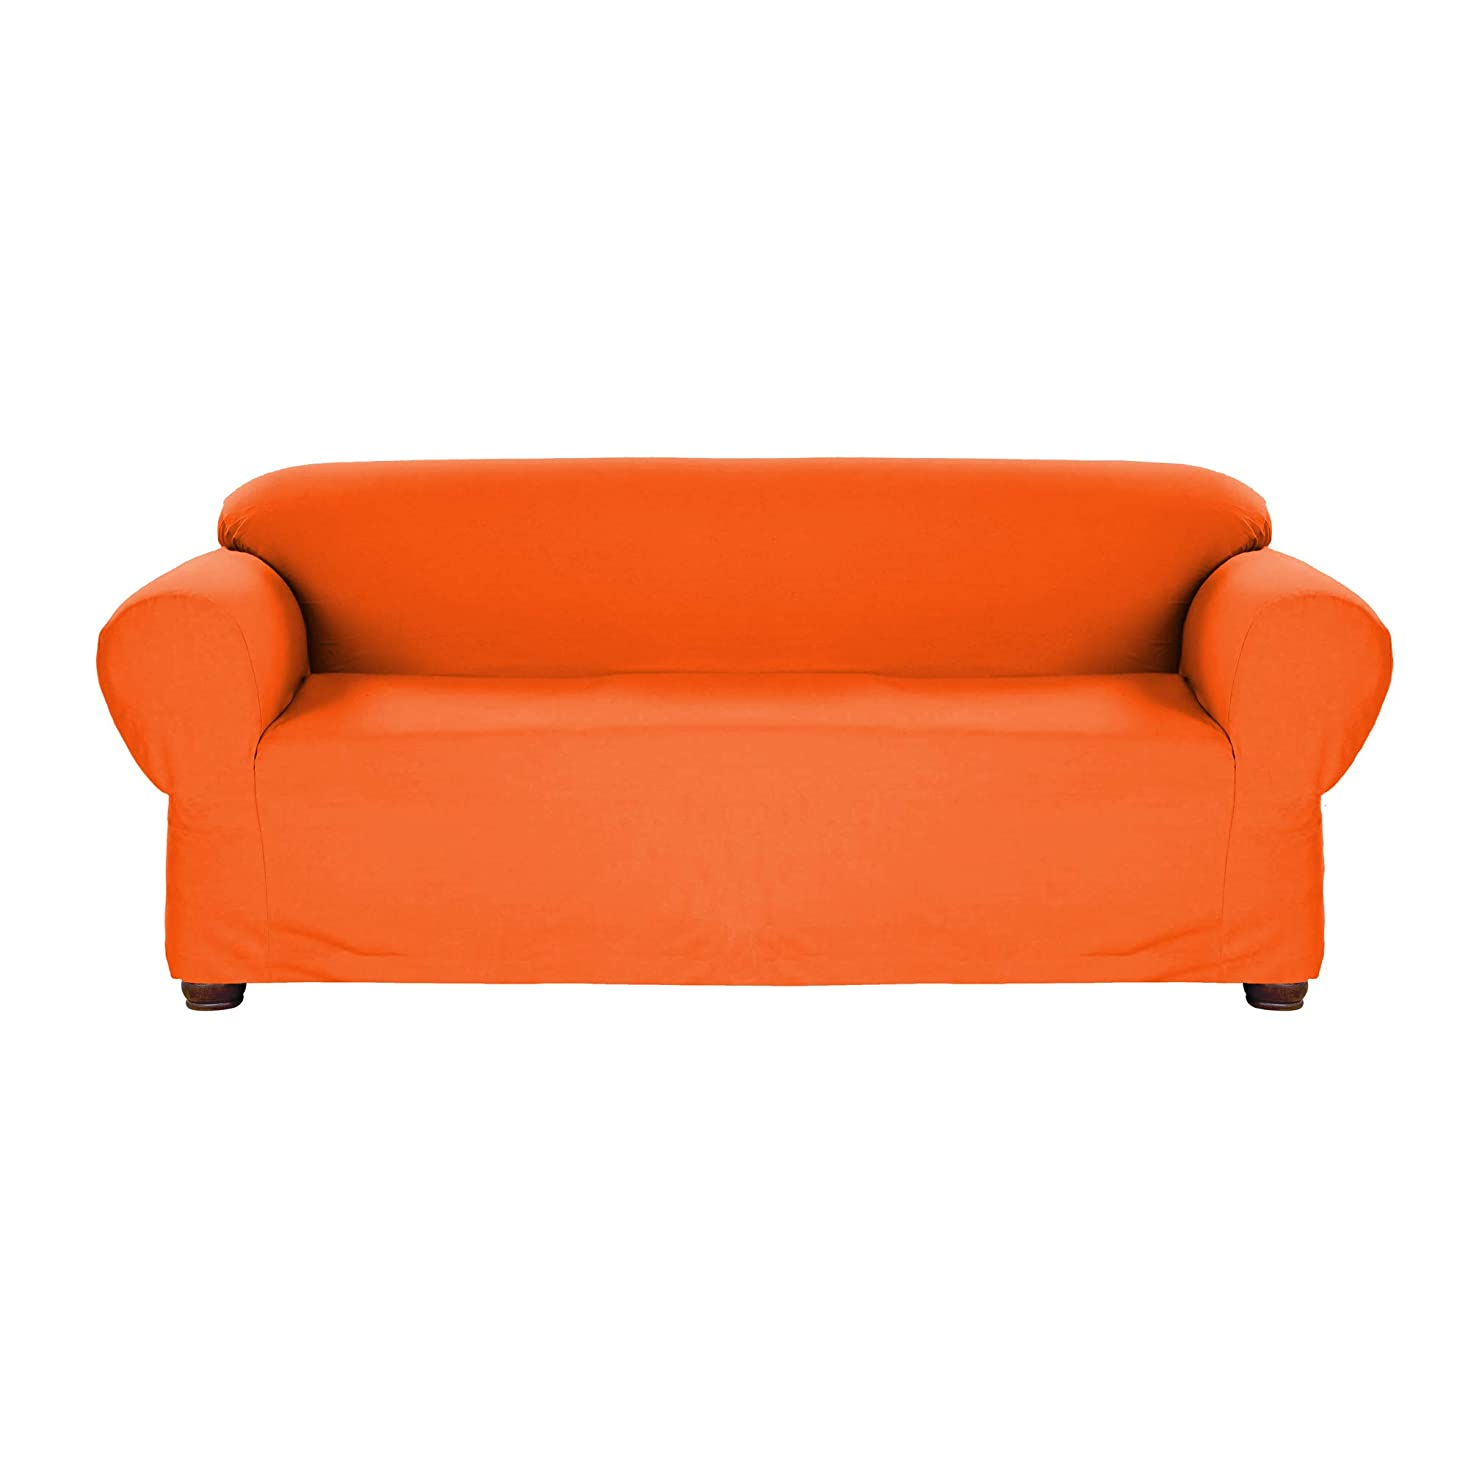 エアコン健康燃料(Sofa, Orange) - Linen Store Stretch Jersey Slipcover, Soft Form Fitting, Solid Colour (Sofa, Orange)